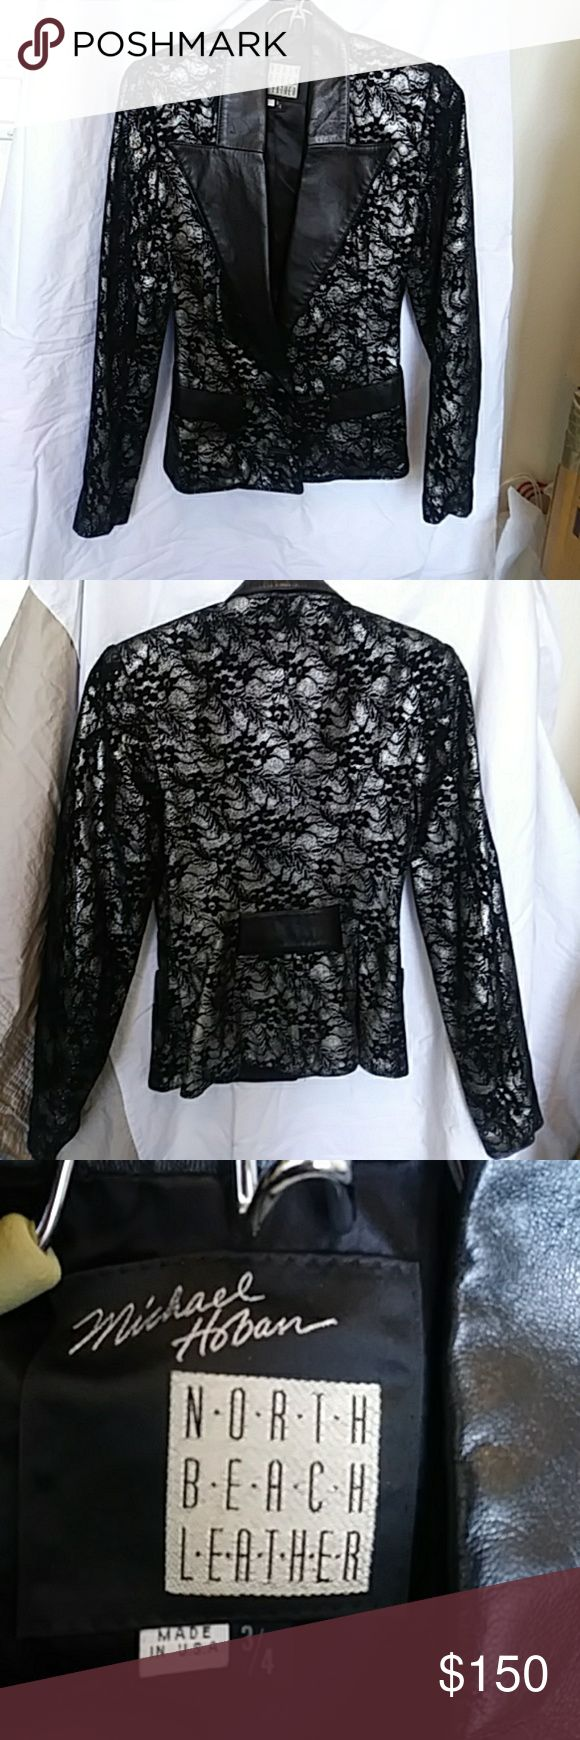 BLACK/SILVER LEATHER NORTH BEACH JCKT, SML BEAUTIFUL NORTH BEACH BLACK AND SILVER LEATHER JACKET. POCKETS. LOOKS LIJE SILVER AND BLACK LACE North Beach Leather Jackets & Coats Blazers